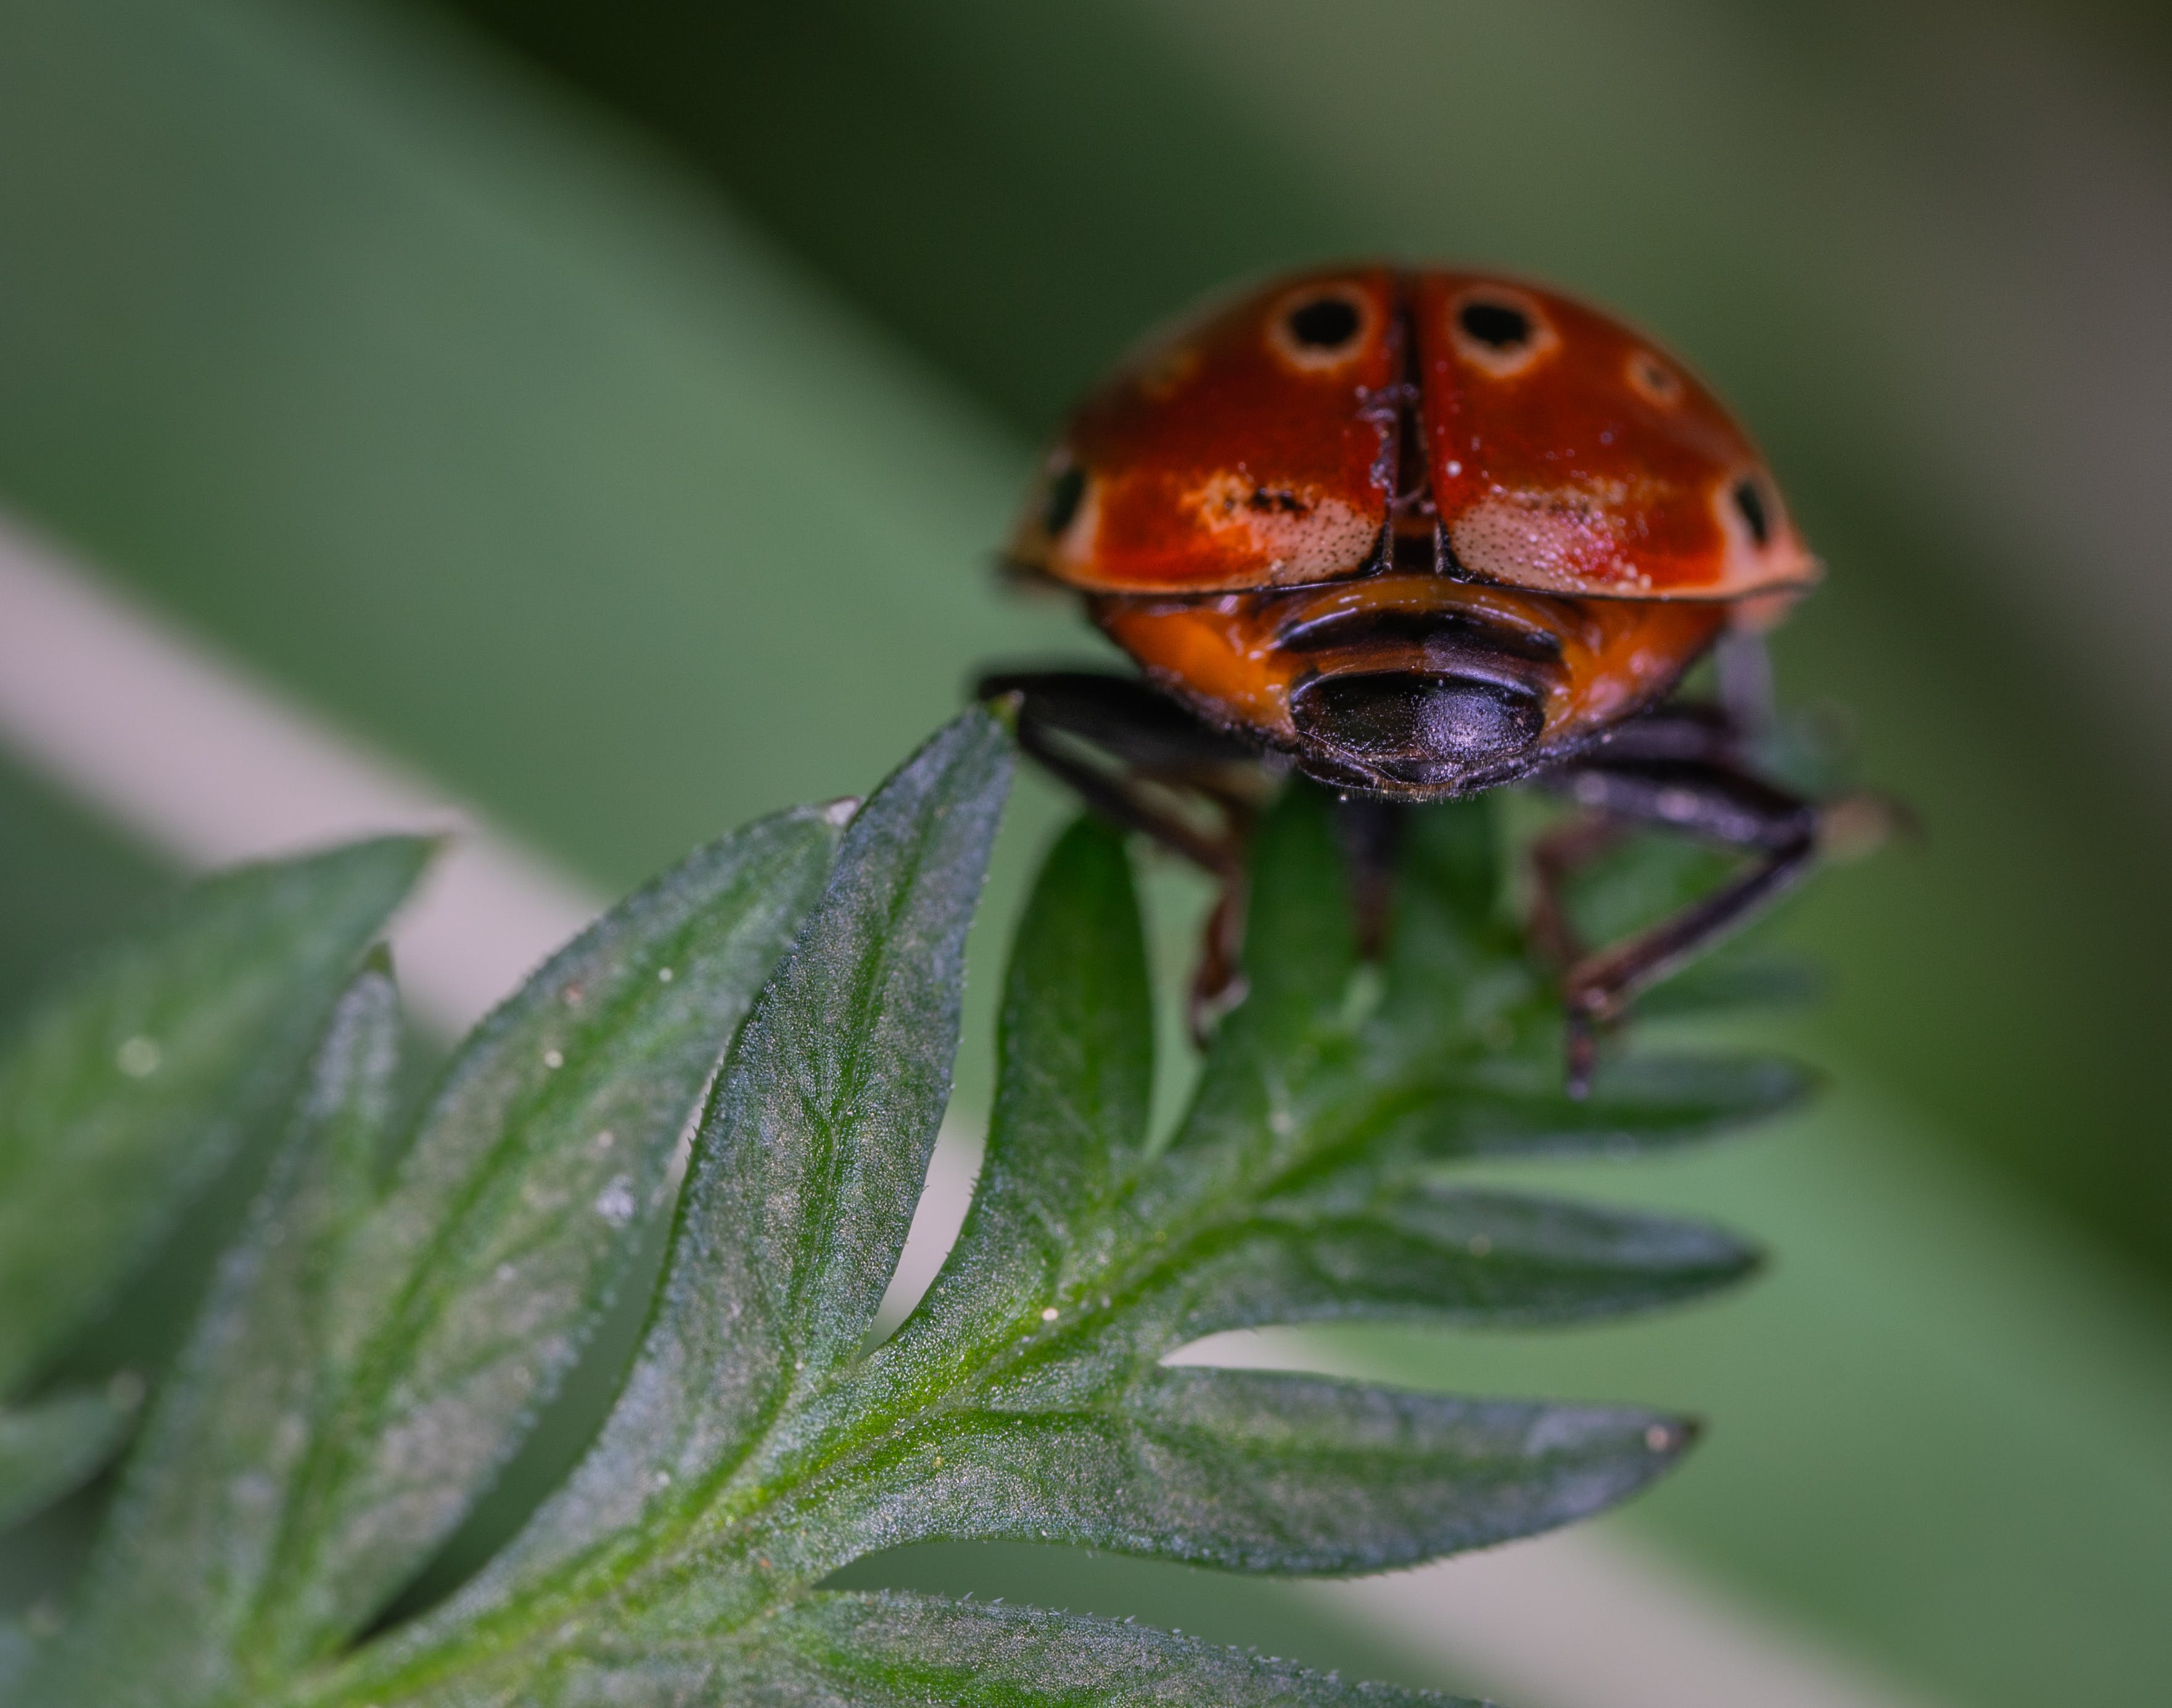 Close-up Photography of Red and Black Ladybug